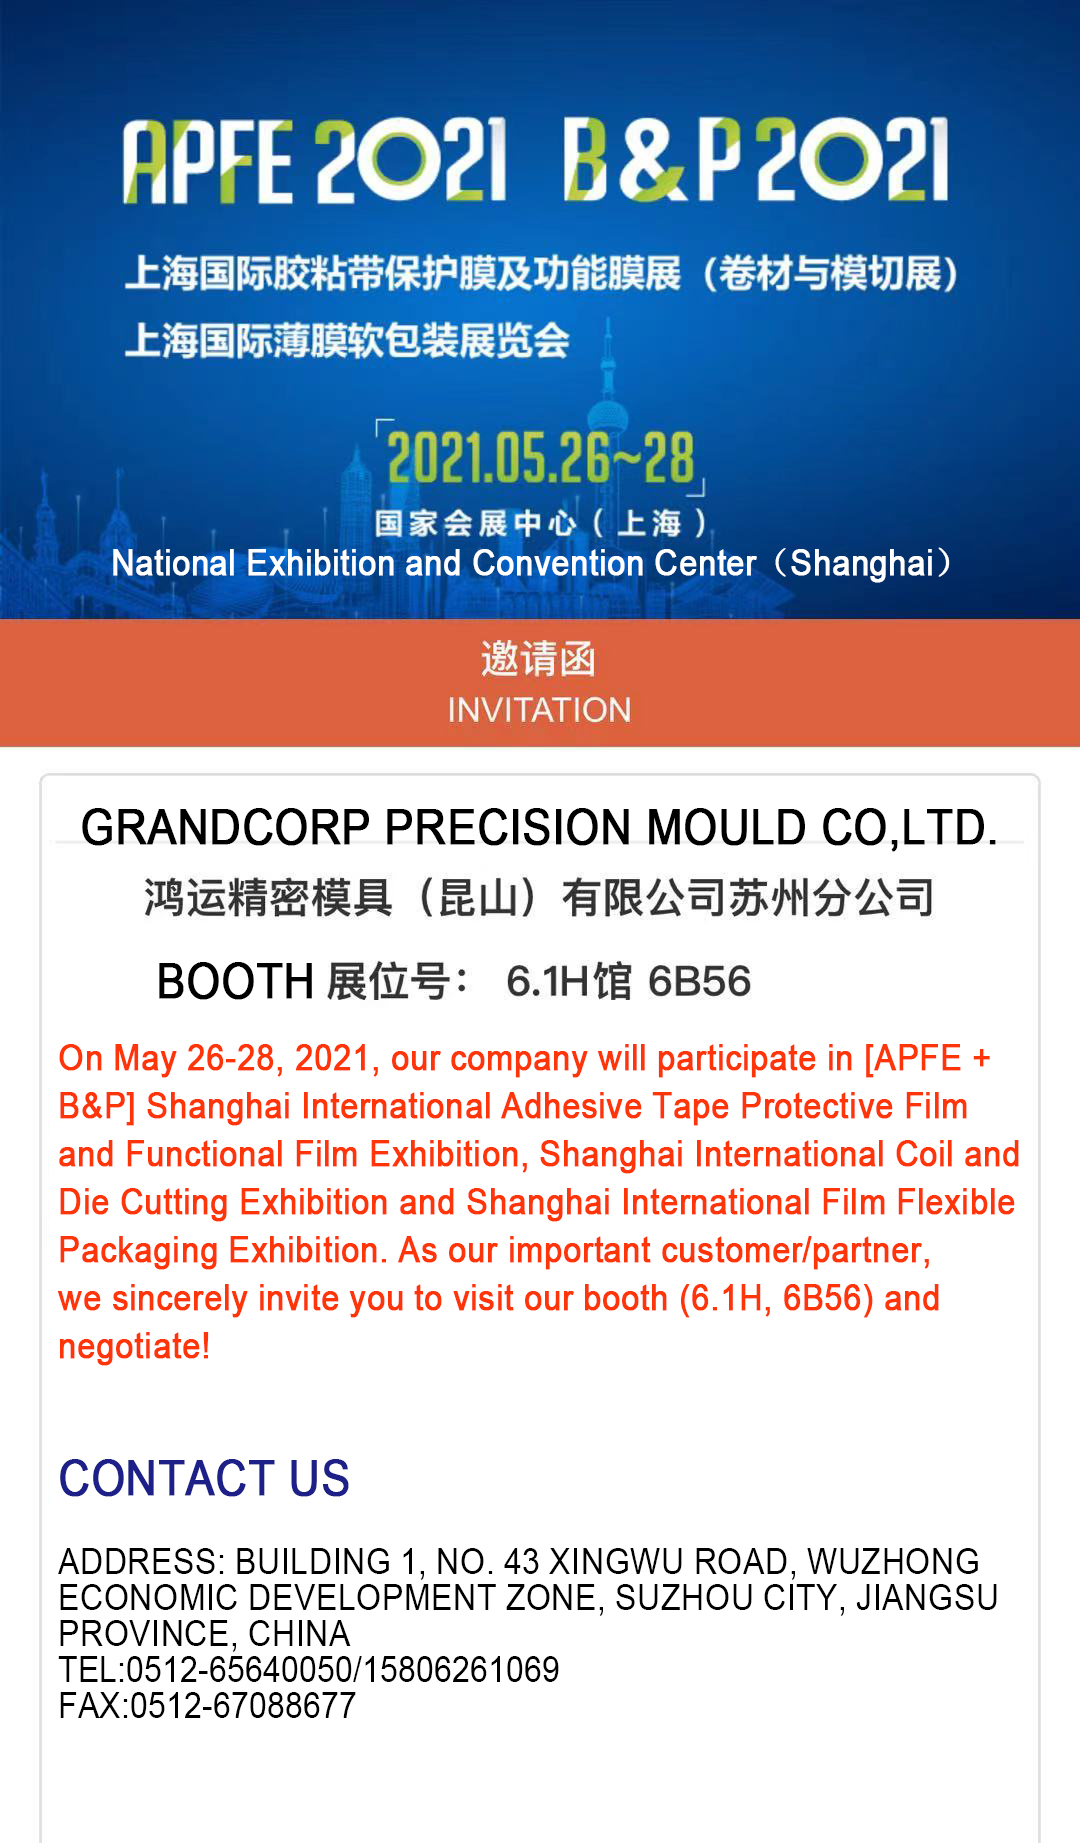 On May 26-28, 2021, our company will participate in APFE   B